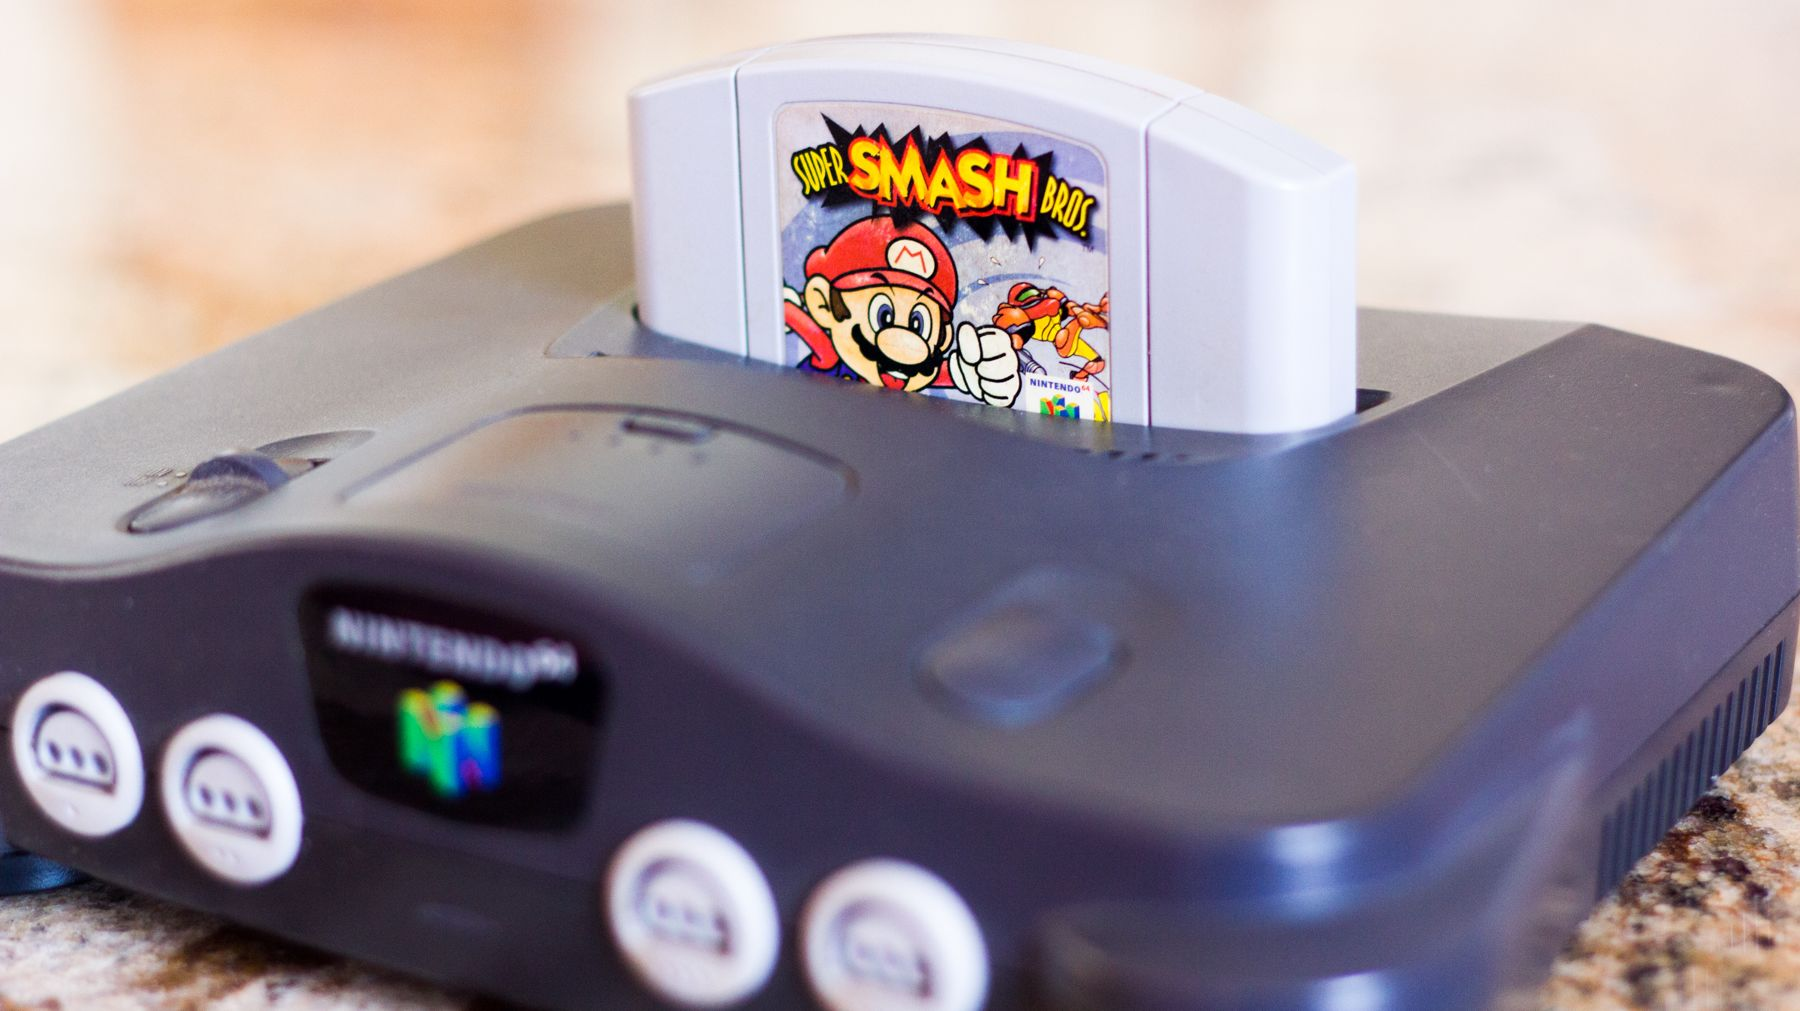 12 Smashing Facts About the Super Smash Bros  Video Games